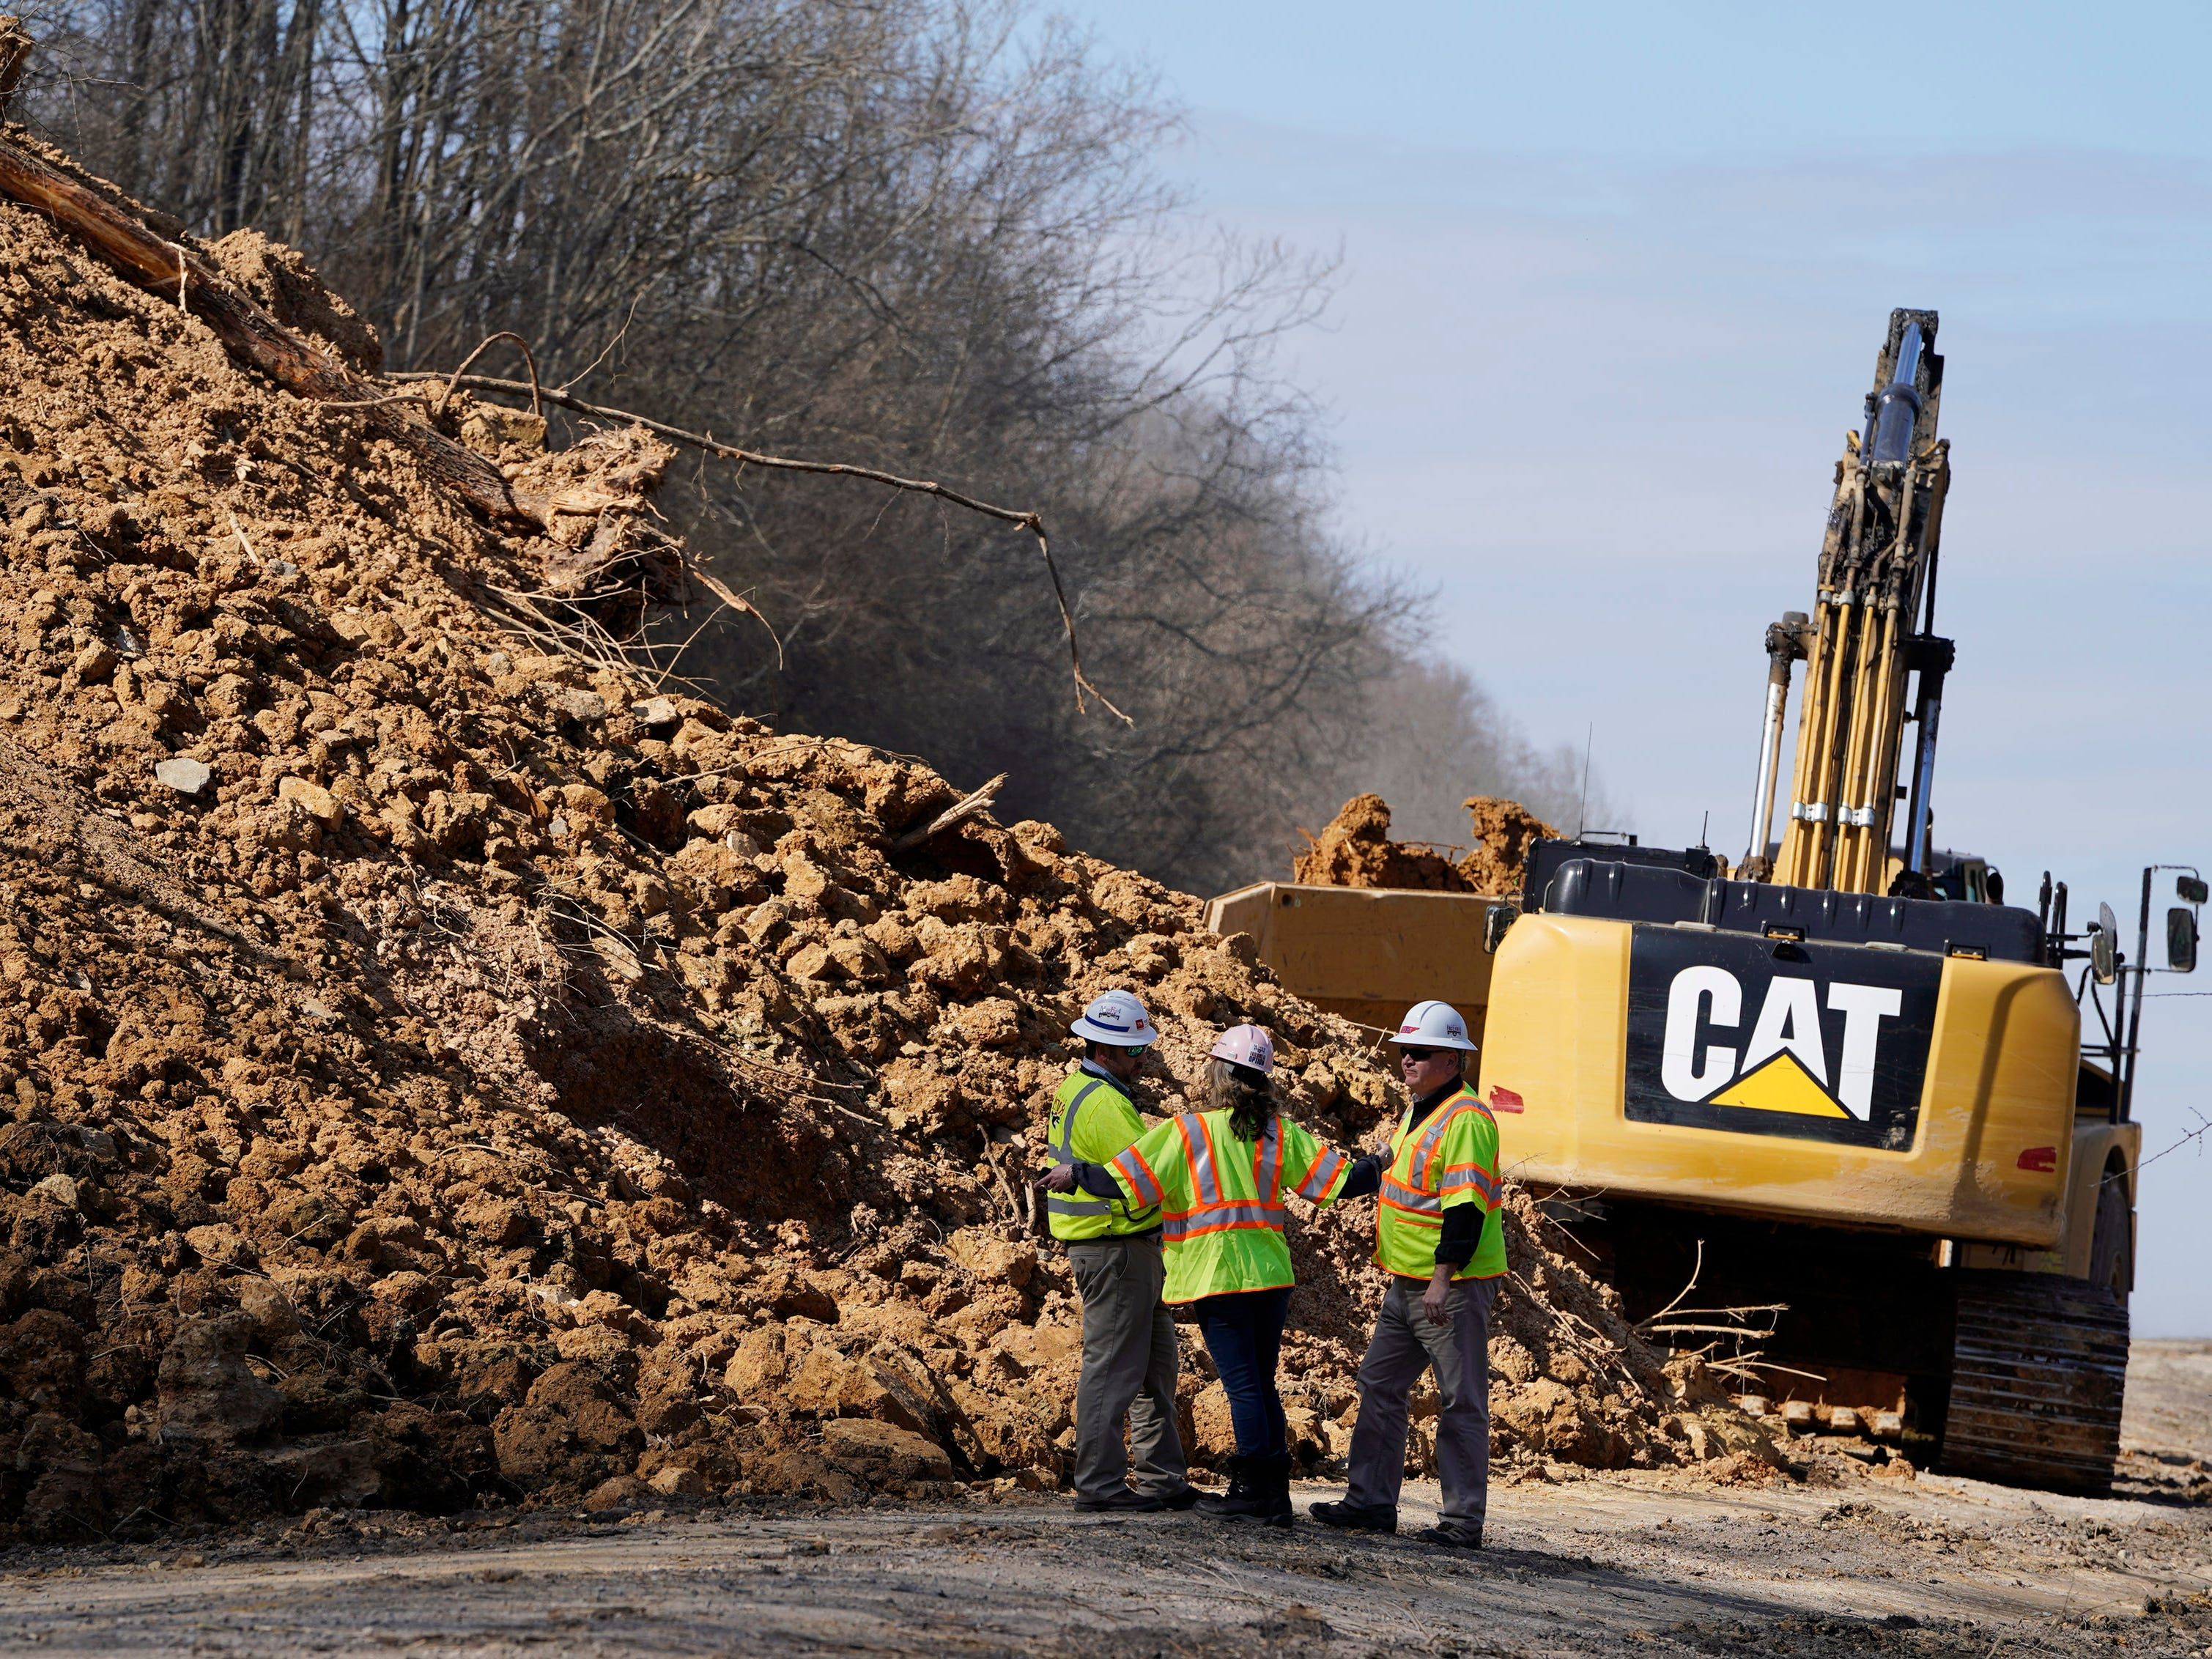 Tennessee Department of Transportation workers clean up debris from a landslide that occurred Saturday along I-24 eastbound near mile marker 42 in the Whites Creek area  Wednesday, Feb. 27, 2019 in Nashville, Tenn.